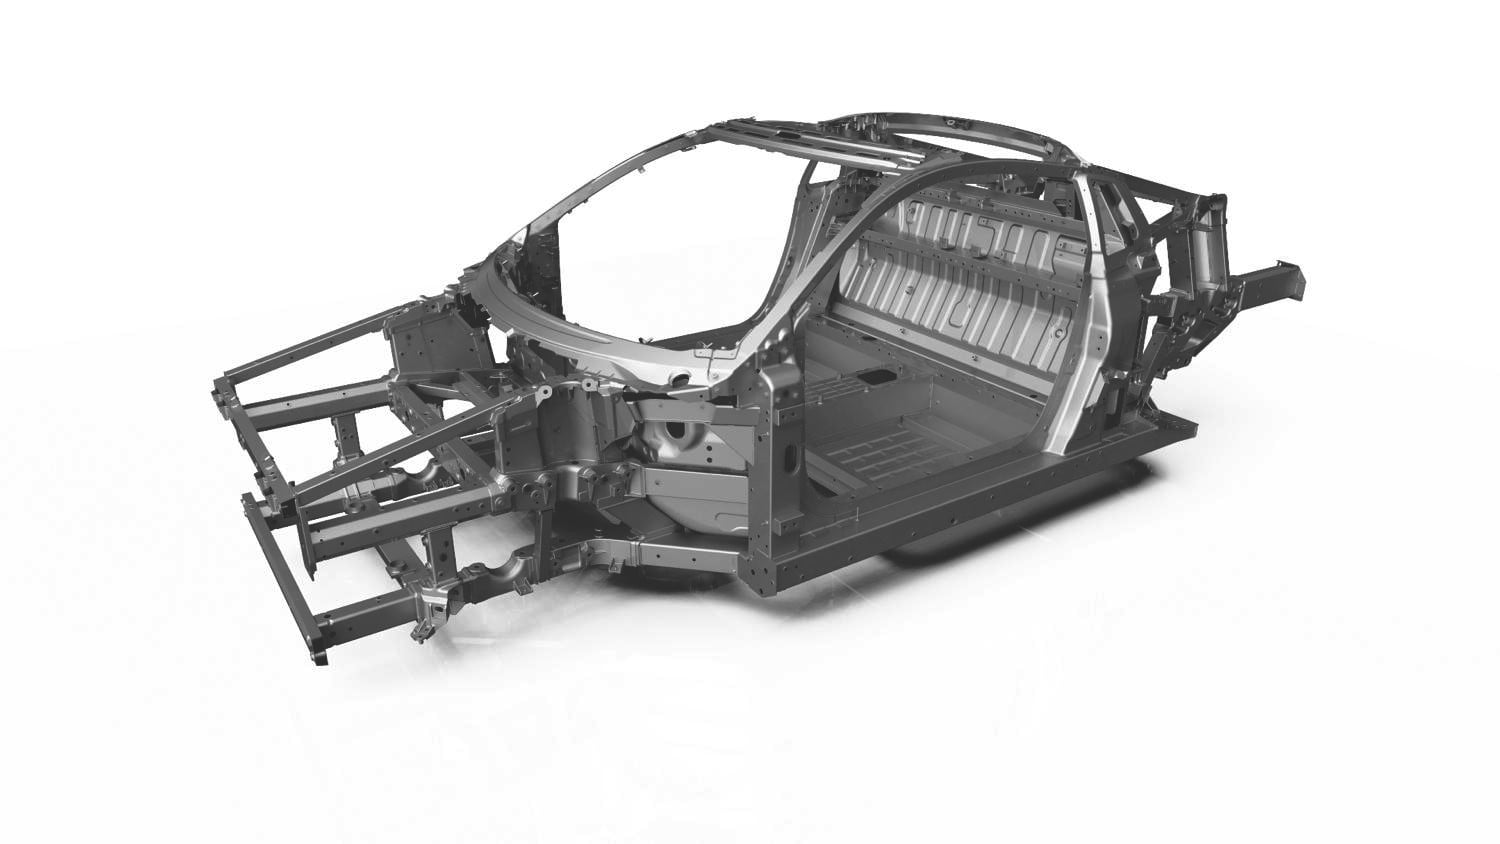 2016 Acura NSX Multi-material Space Frame